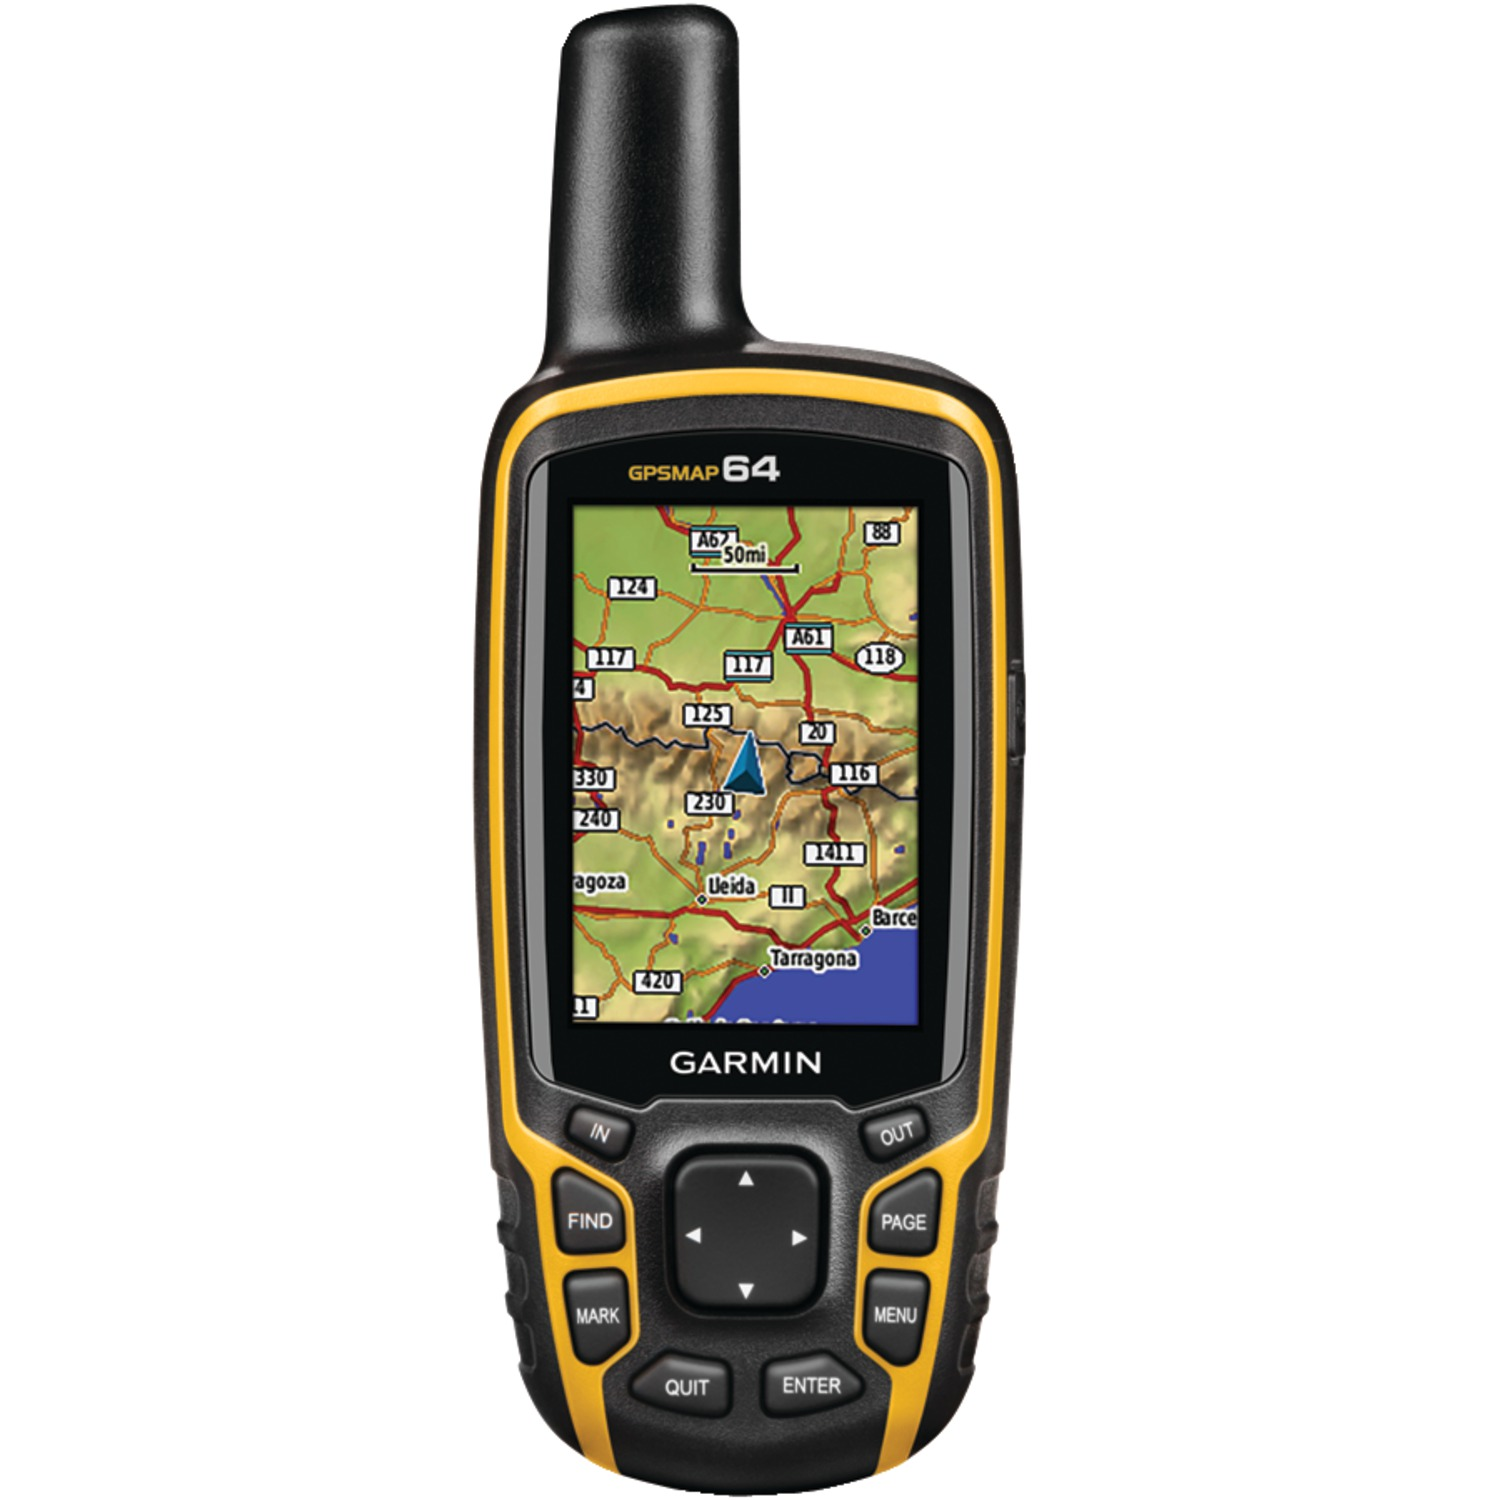 Garmin 010-01199-00 GPSMAP 64 Worldwide GPS Receiver by Garmin